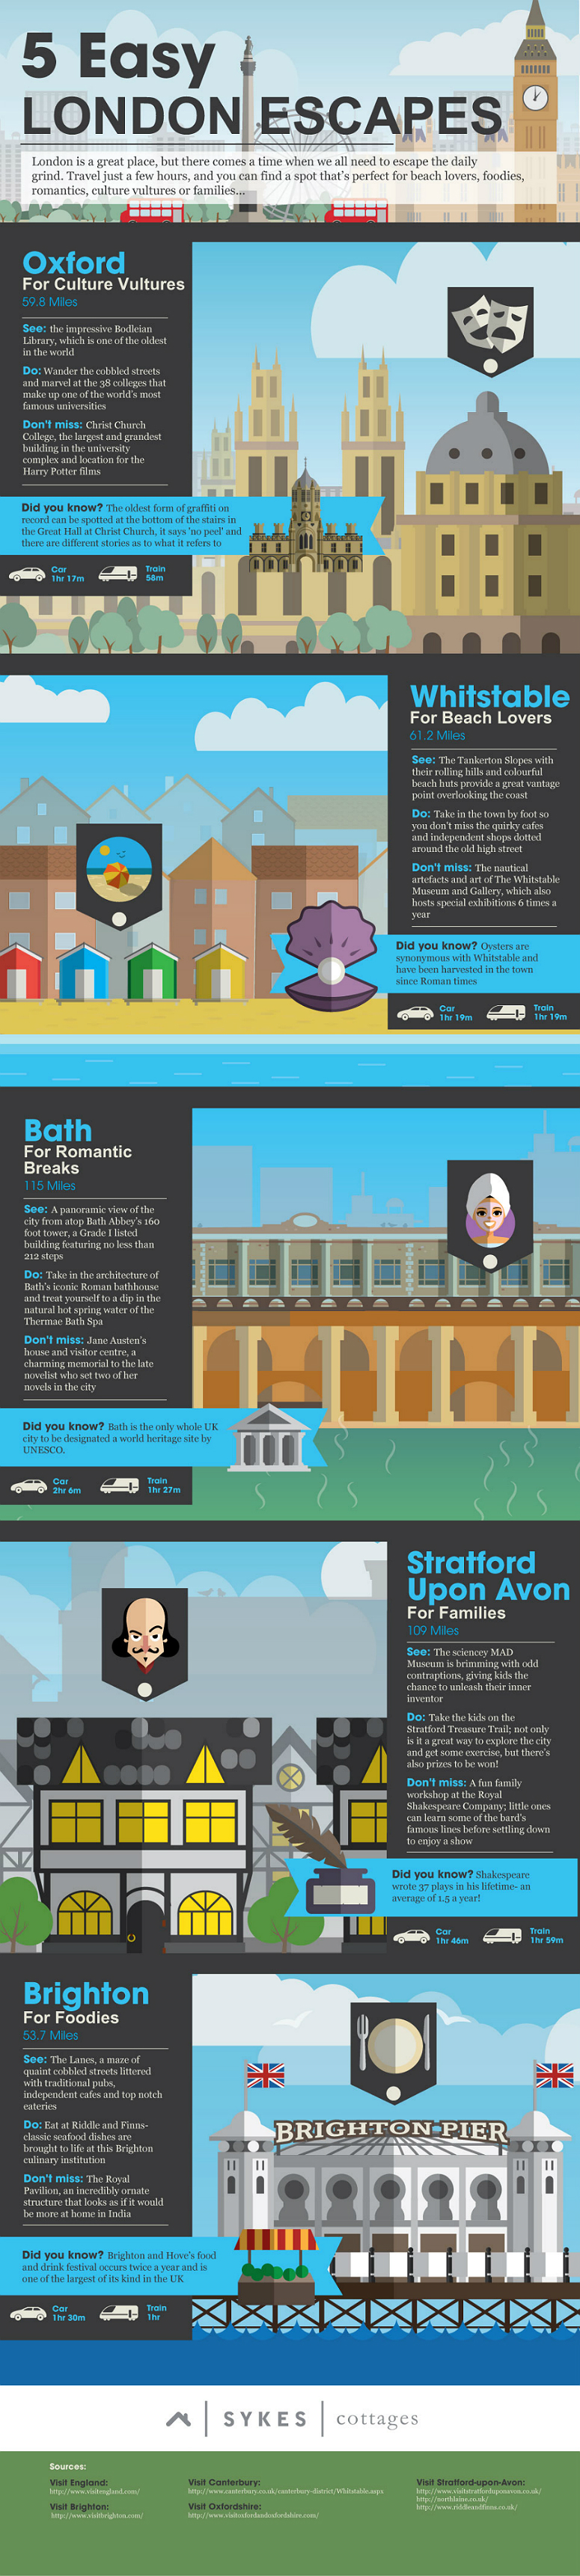 Sykes-Cottages-London-Escapes-Infographic